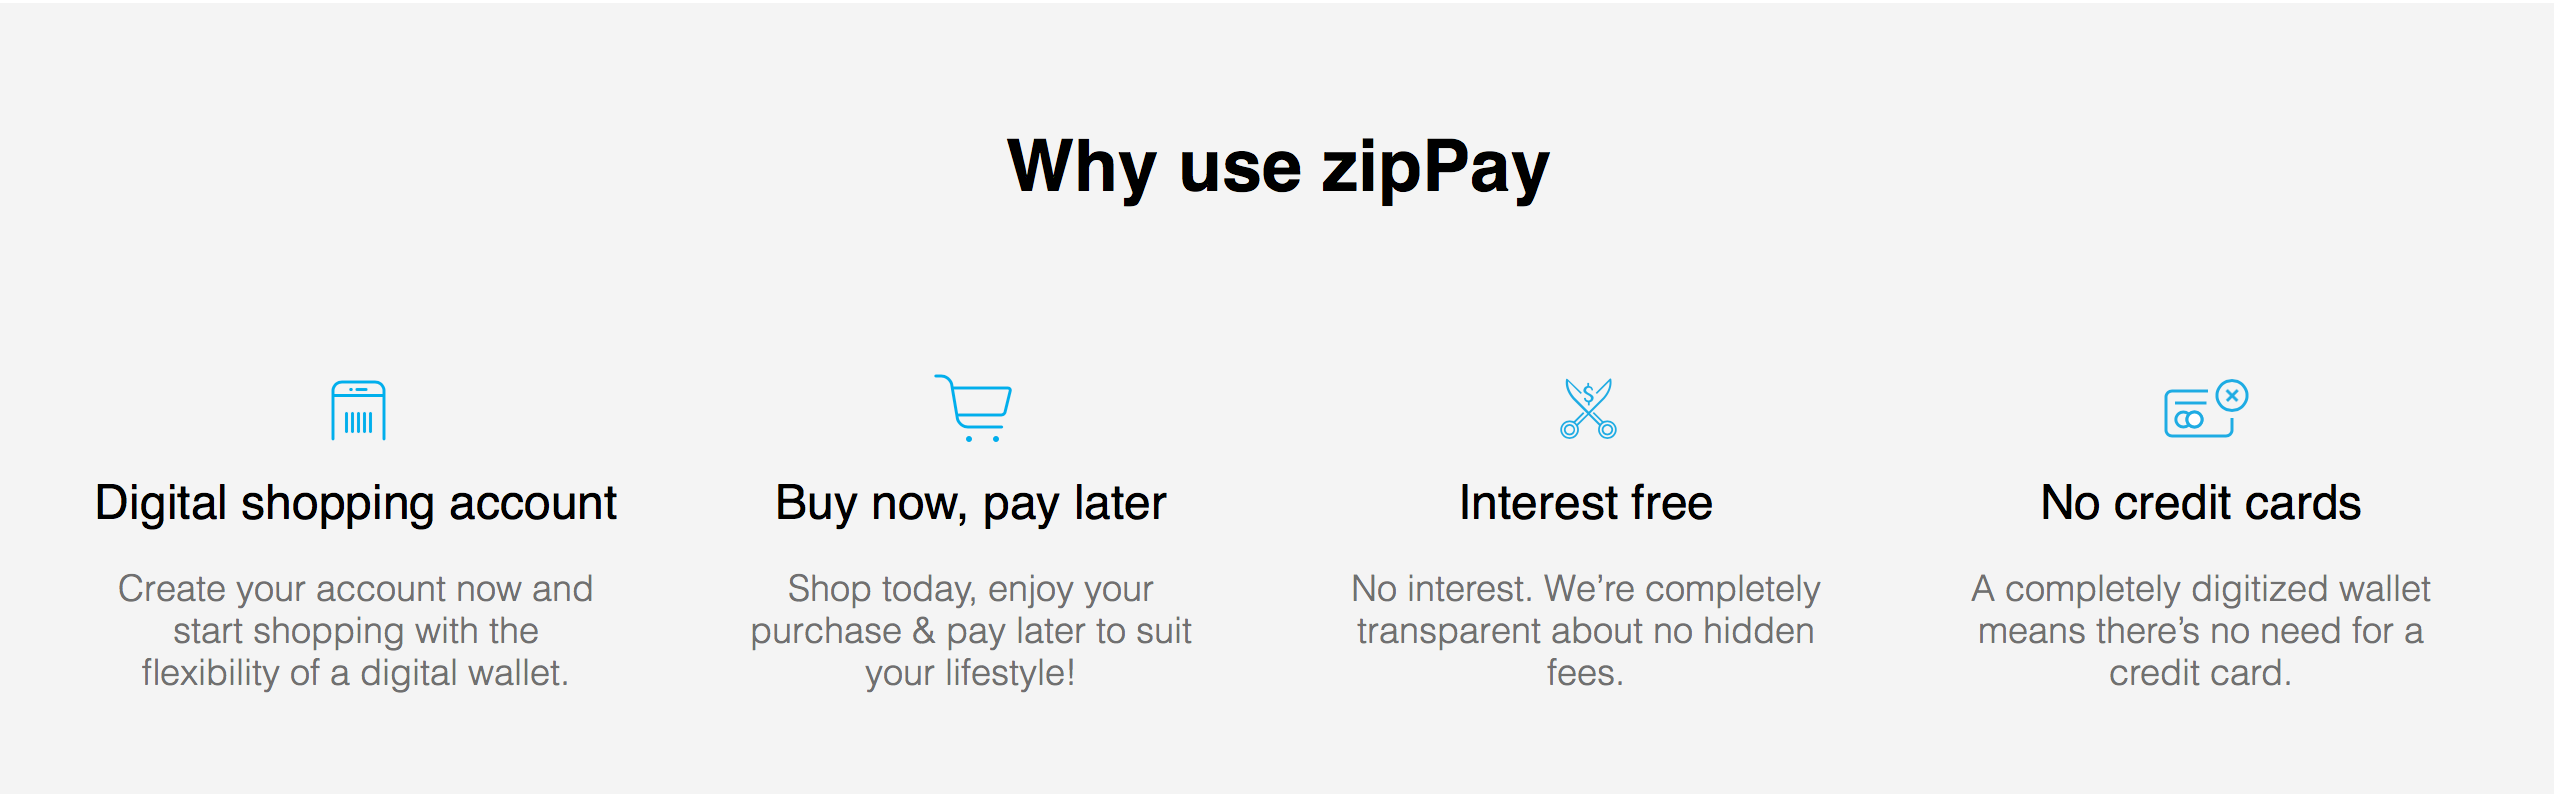 Digital shopping account. Buy now, pay later. Interest free. No credit cards.